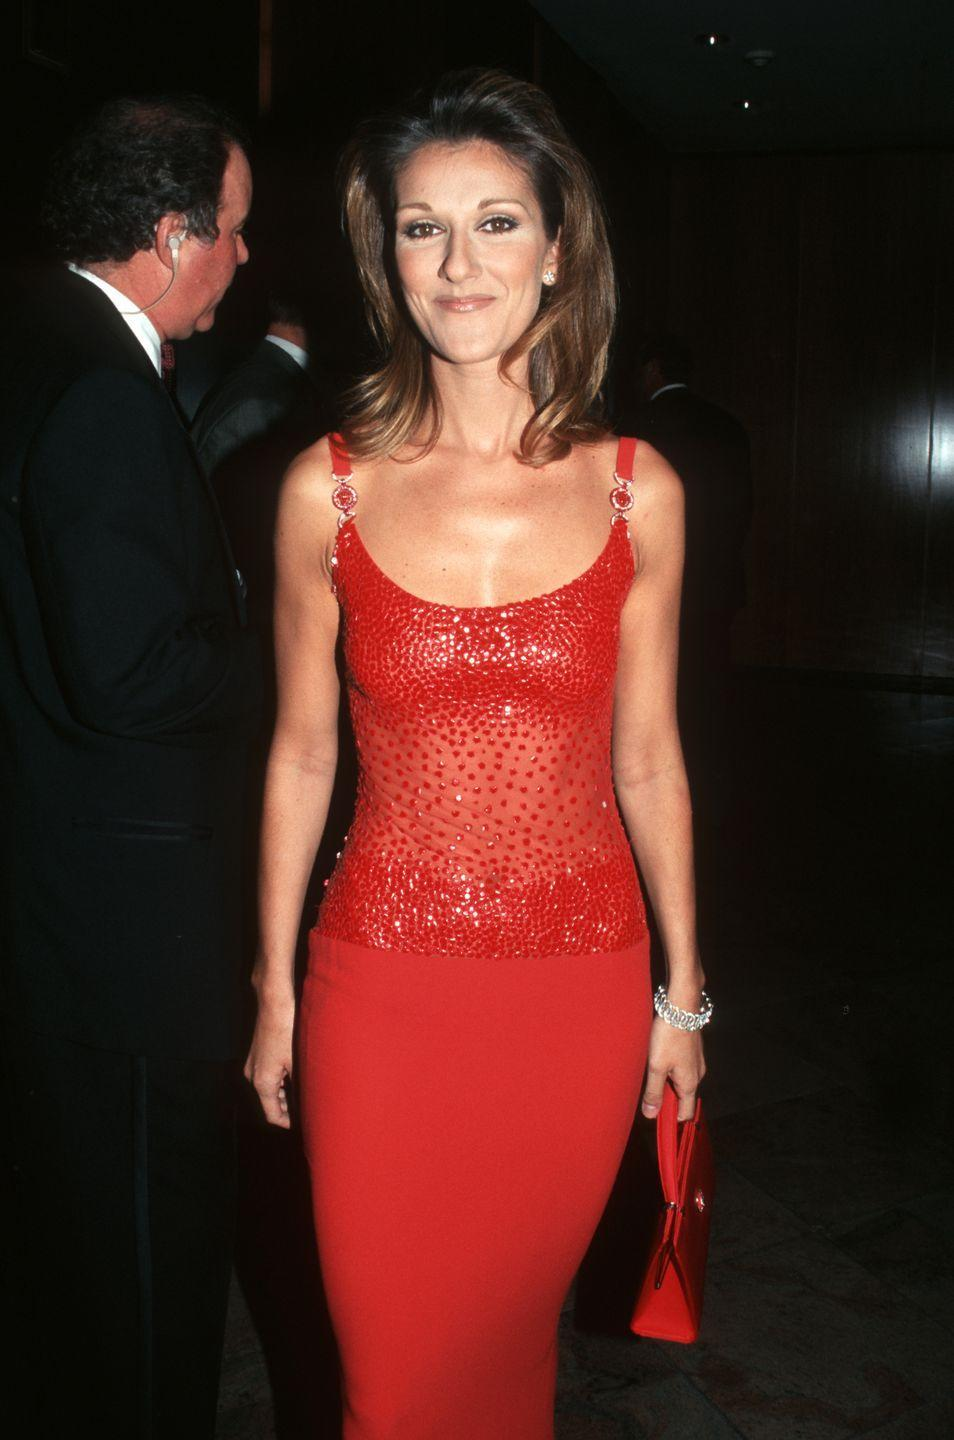 <p>Feeling red hot in the middle of summer, Celine wore a form-fitting red gown with a netted bodice to the Tony Awards in New York City. Please note the envy-inducing matching red purse, too.</p>